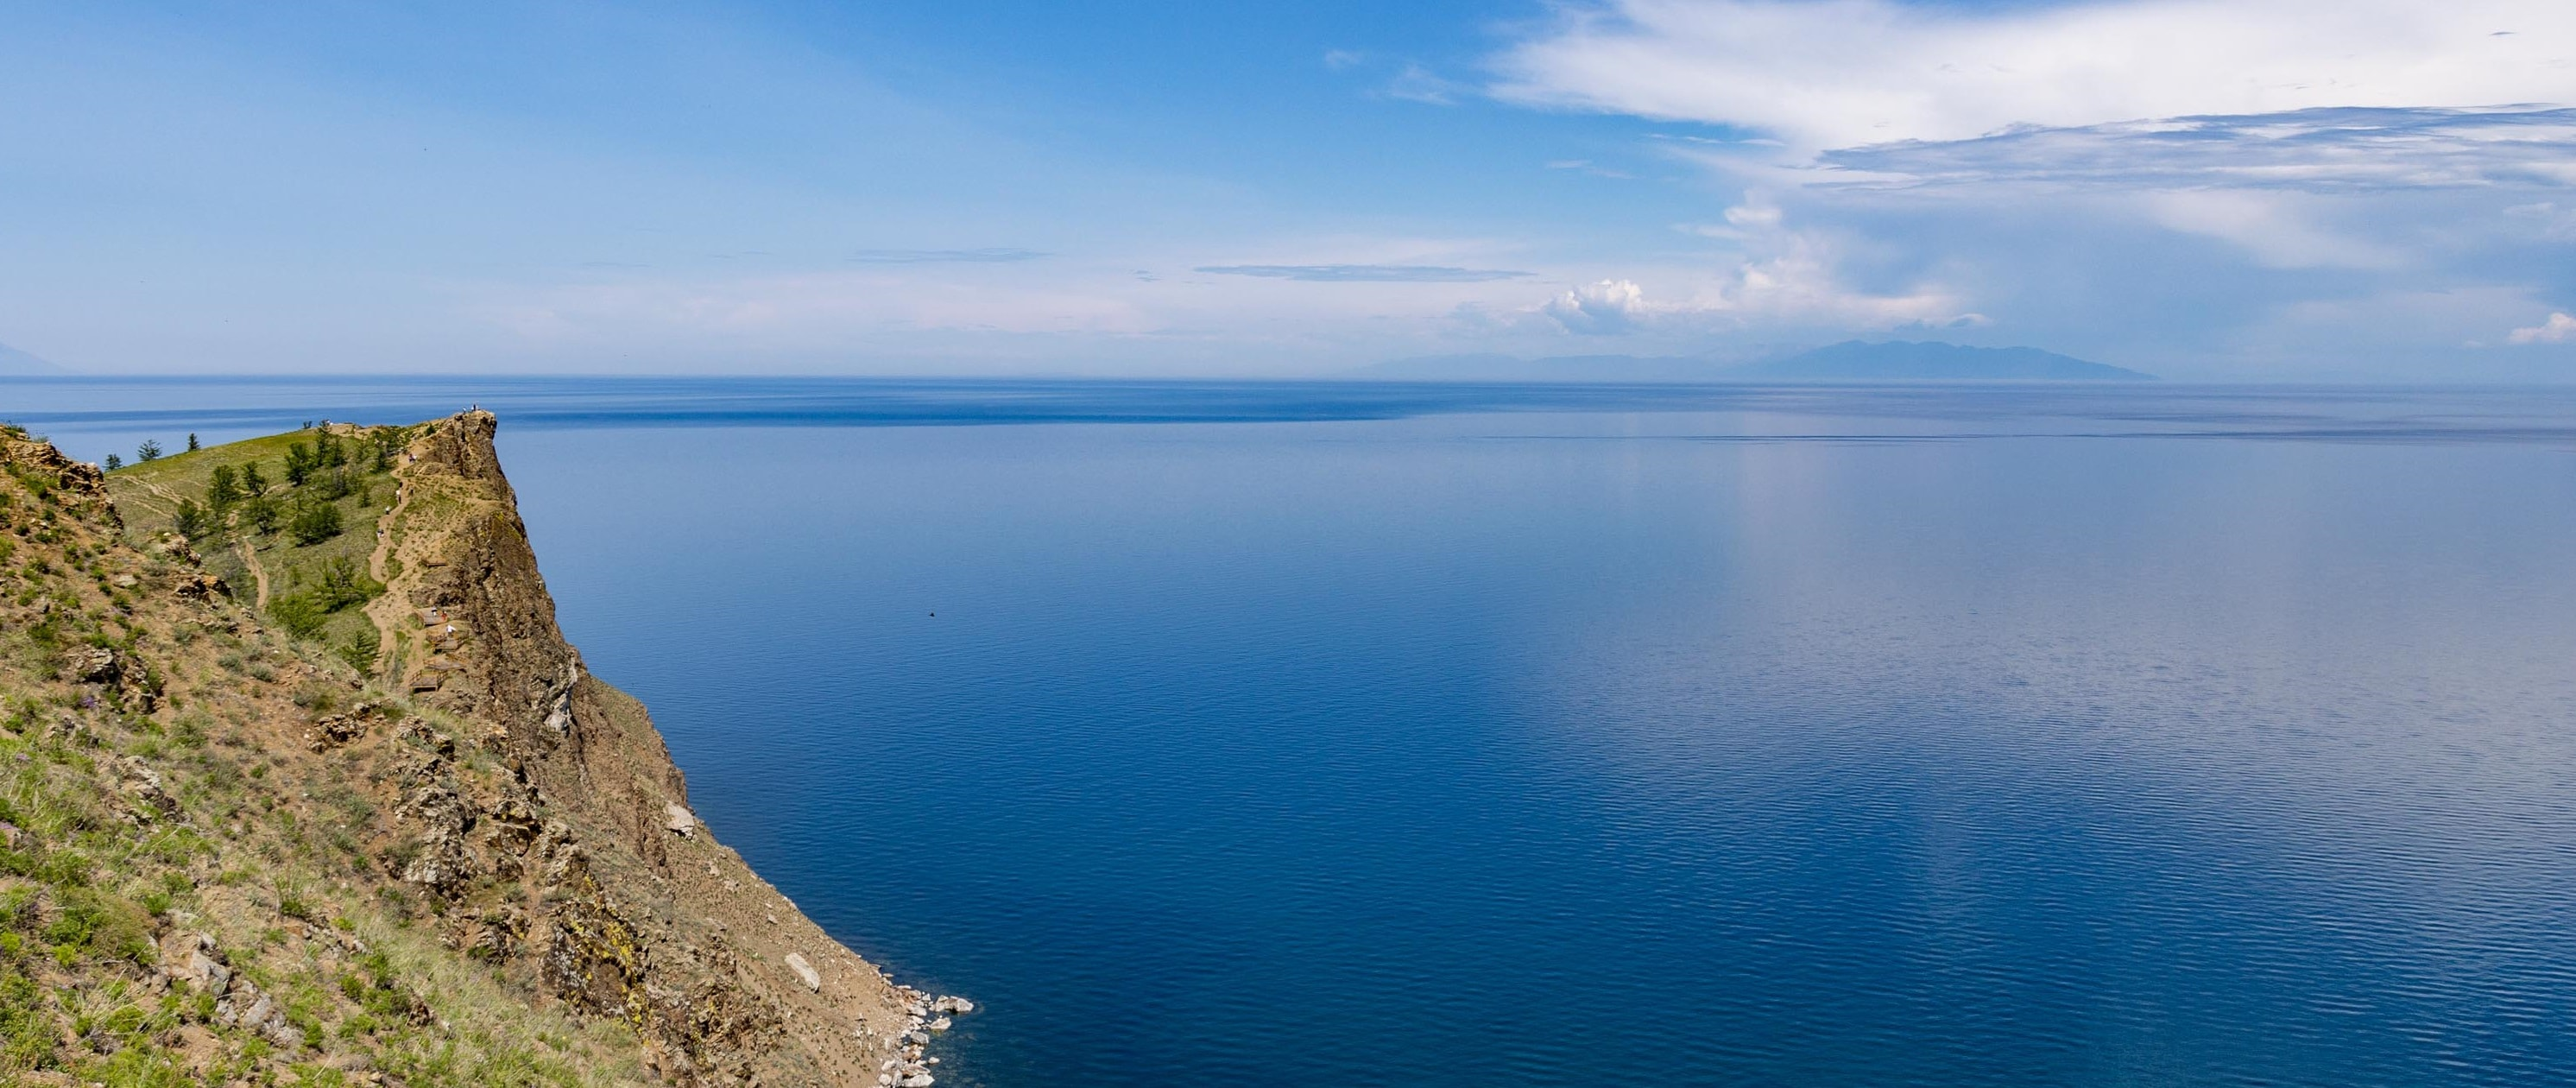 The Most Breathtaking Things To Do By Lake Baikal in Siberia, Russia.